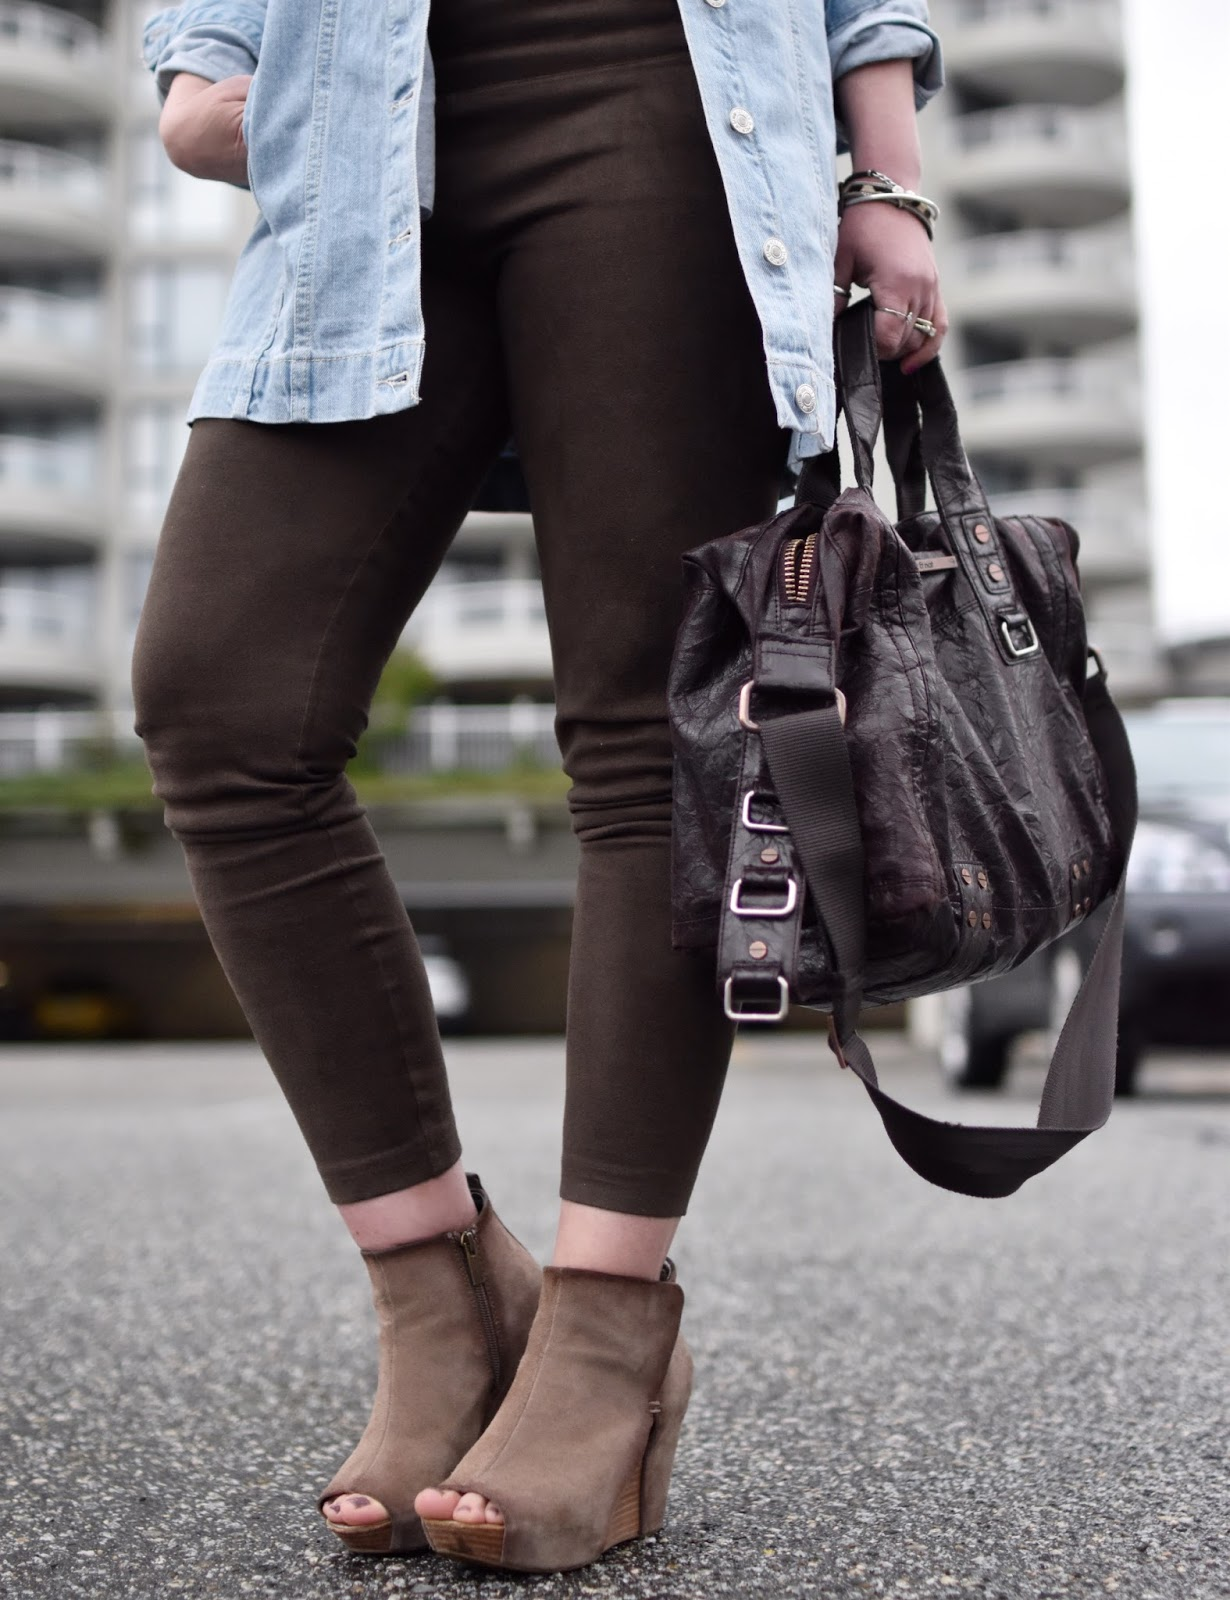 Monika Faulkner outfit inspiration - vegan suede leggings, oversized denim jacket, open-toe wedge booties, matt & nat bag